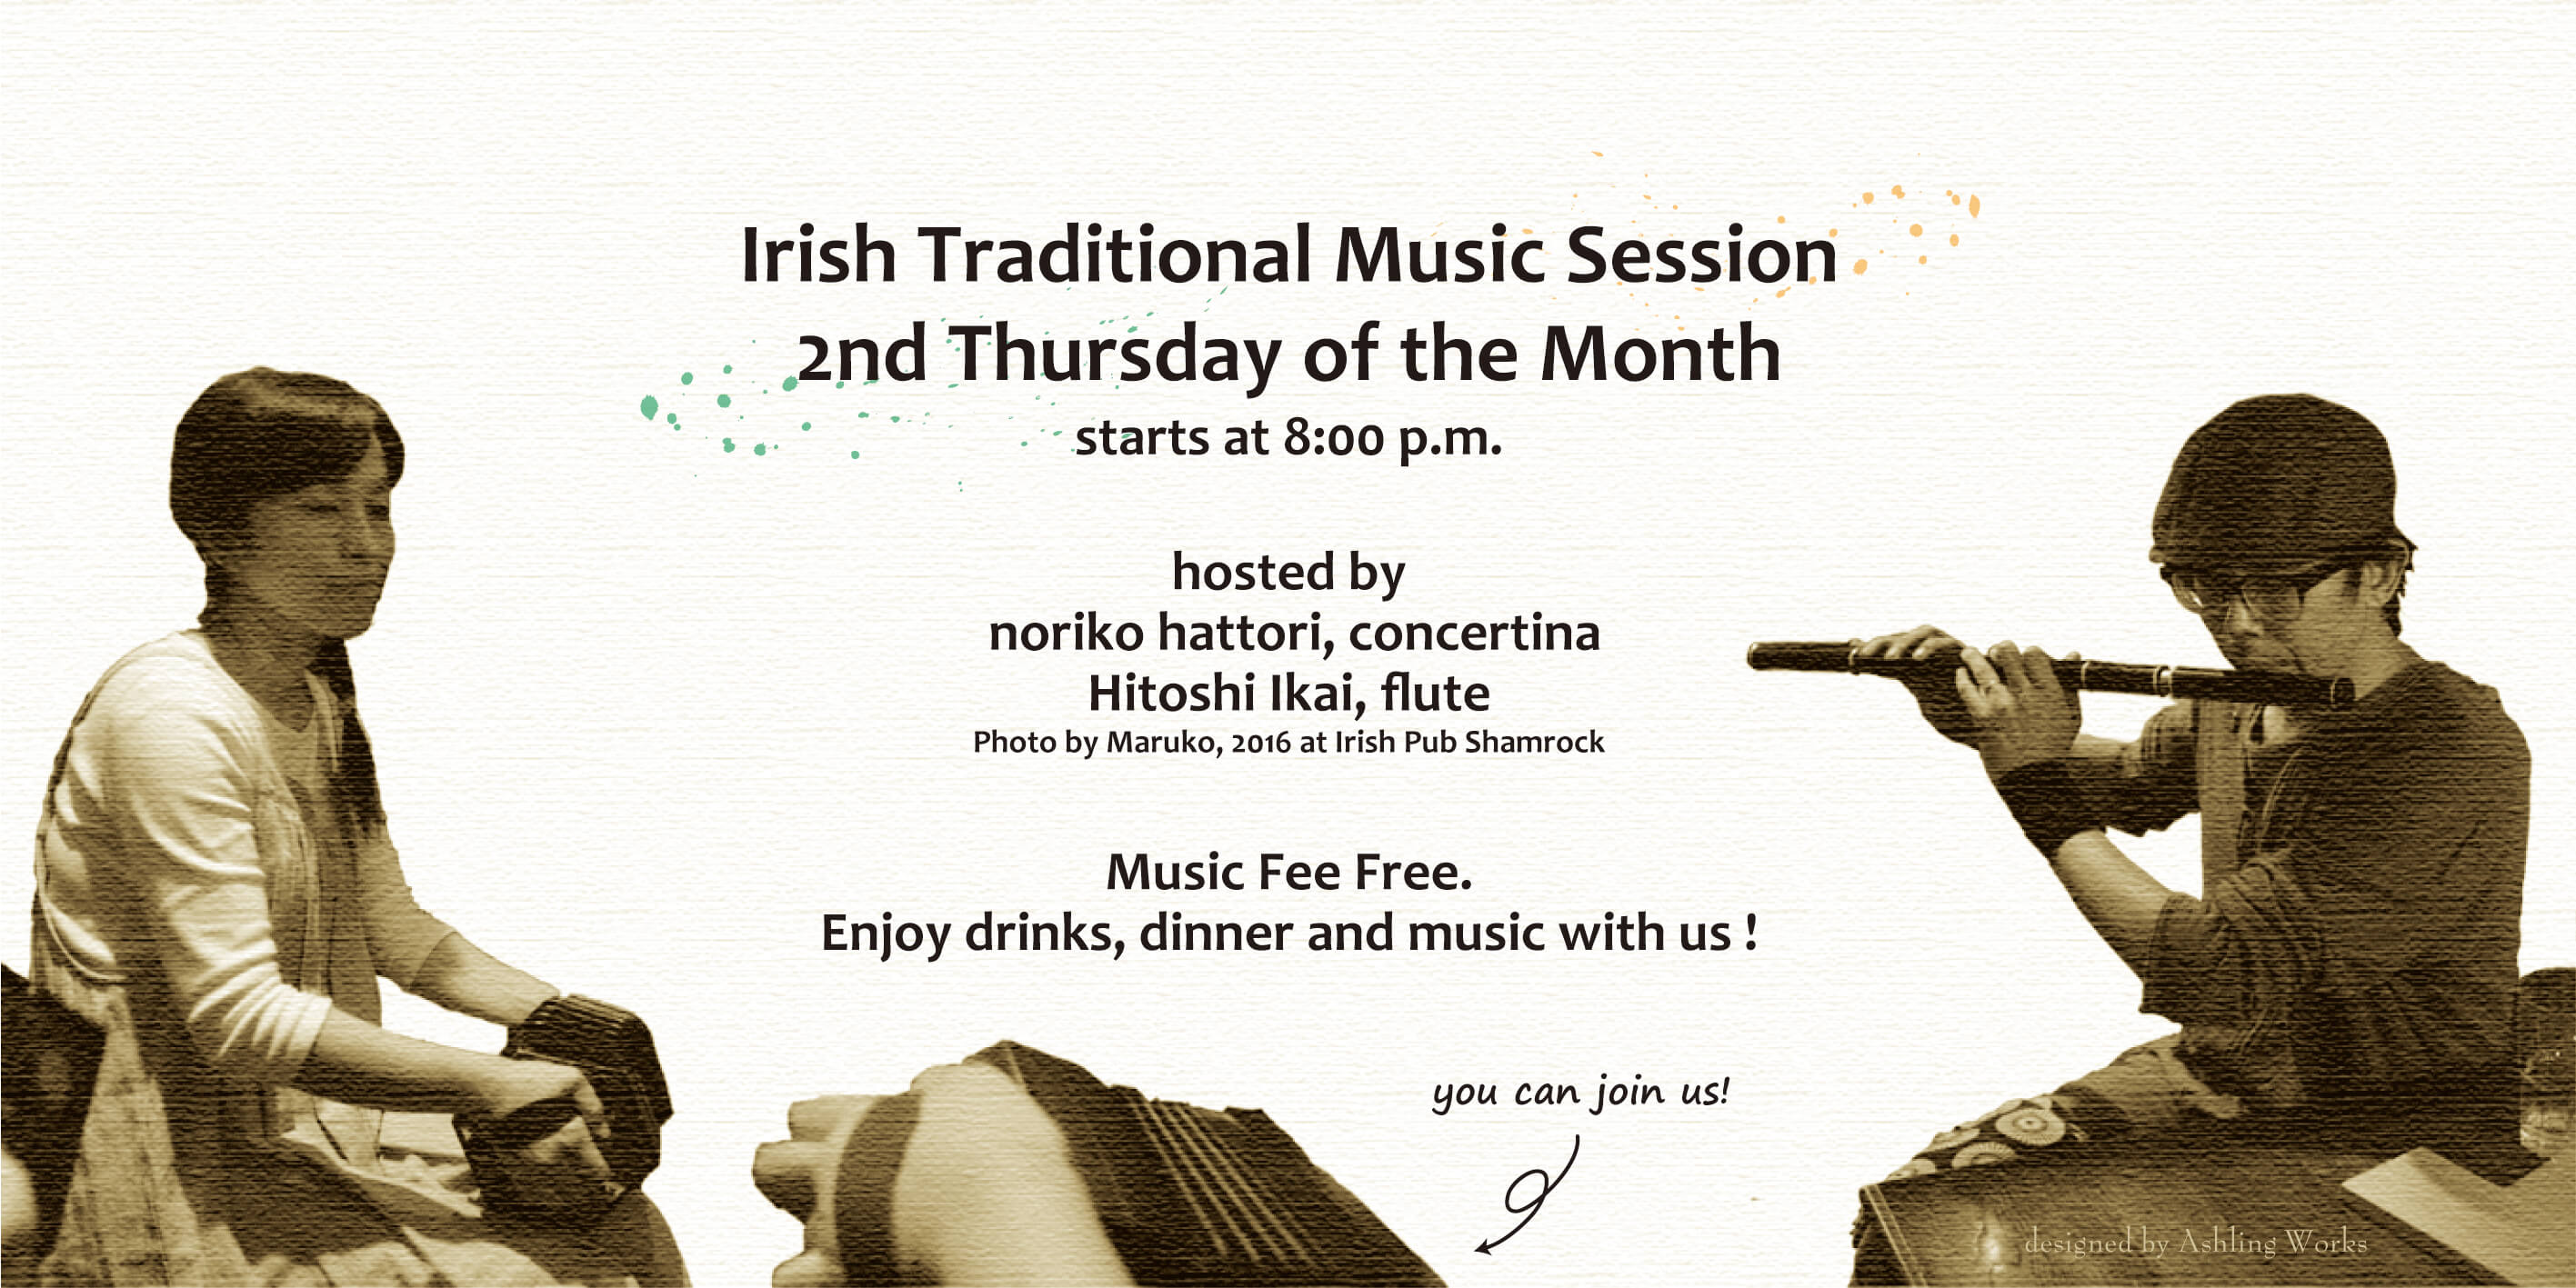 Irish Music Session Hattori&Ikai